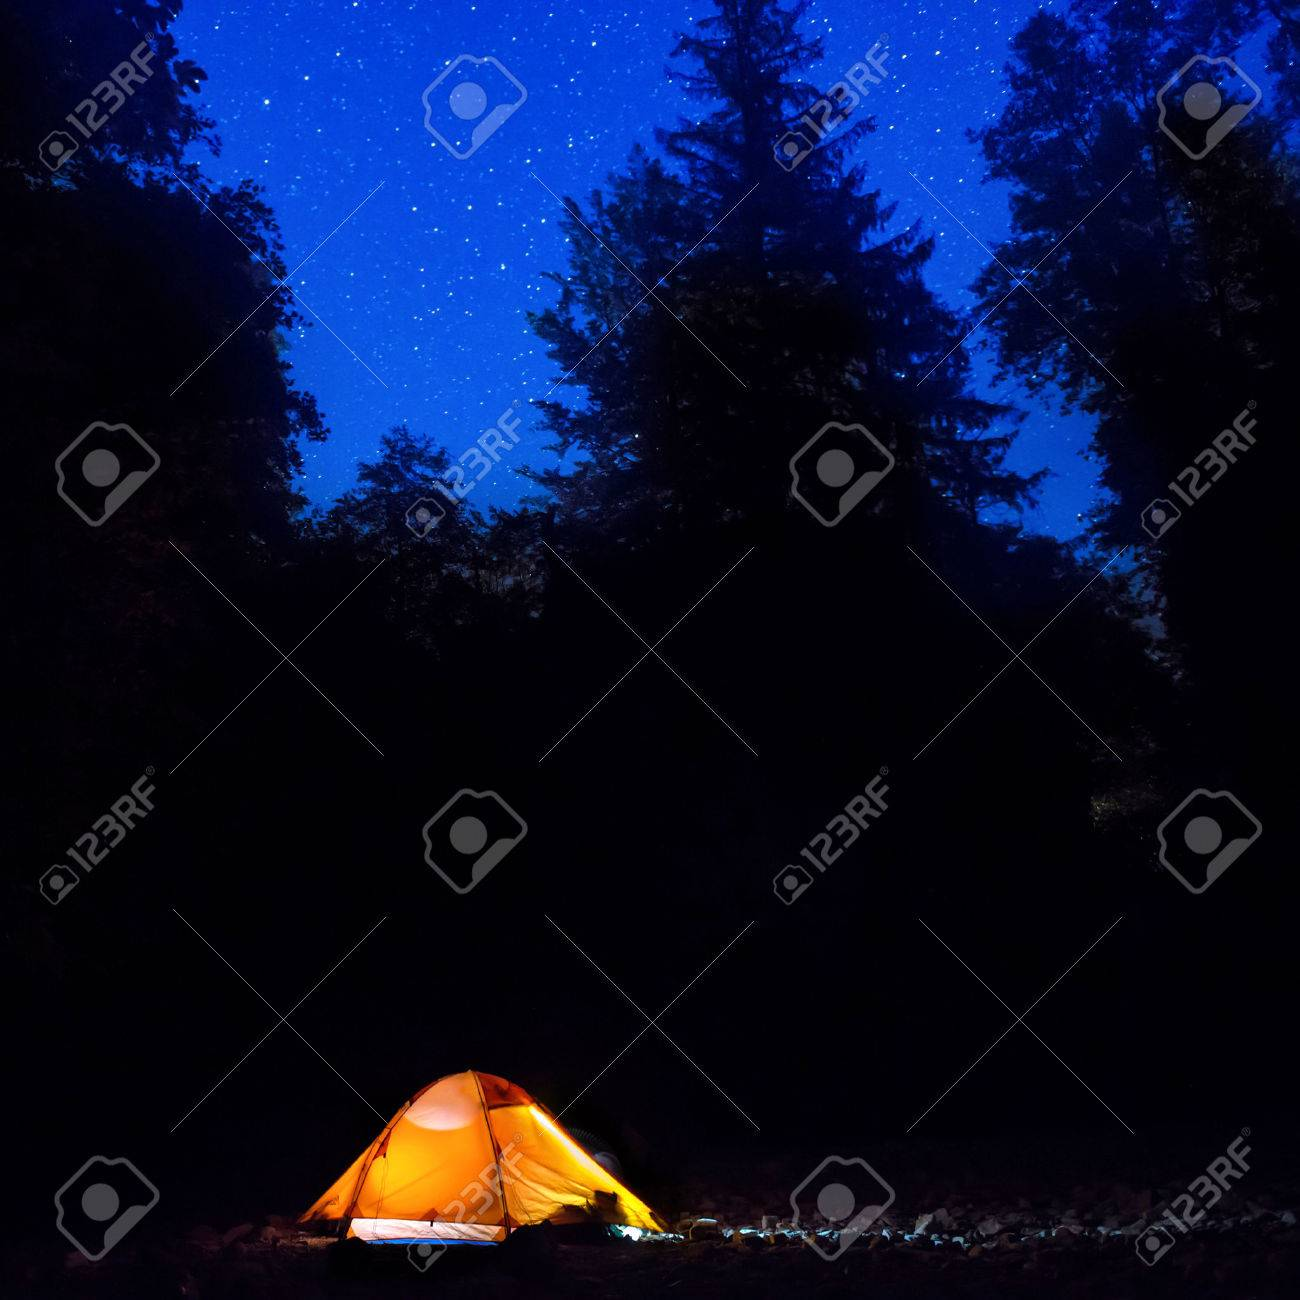 Illuminated orange tent at night in the forest under dark blue sky with many stars Stock  sc 1 st  123RF Stock Photos & Illuminated Orange Tent At Night In The Forest Under Dark Blue ...